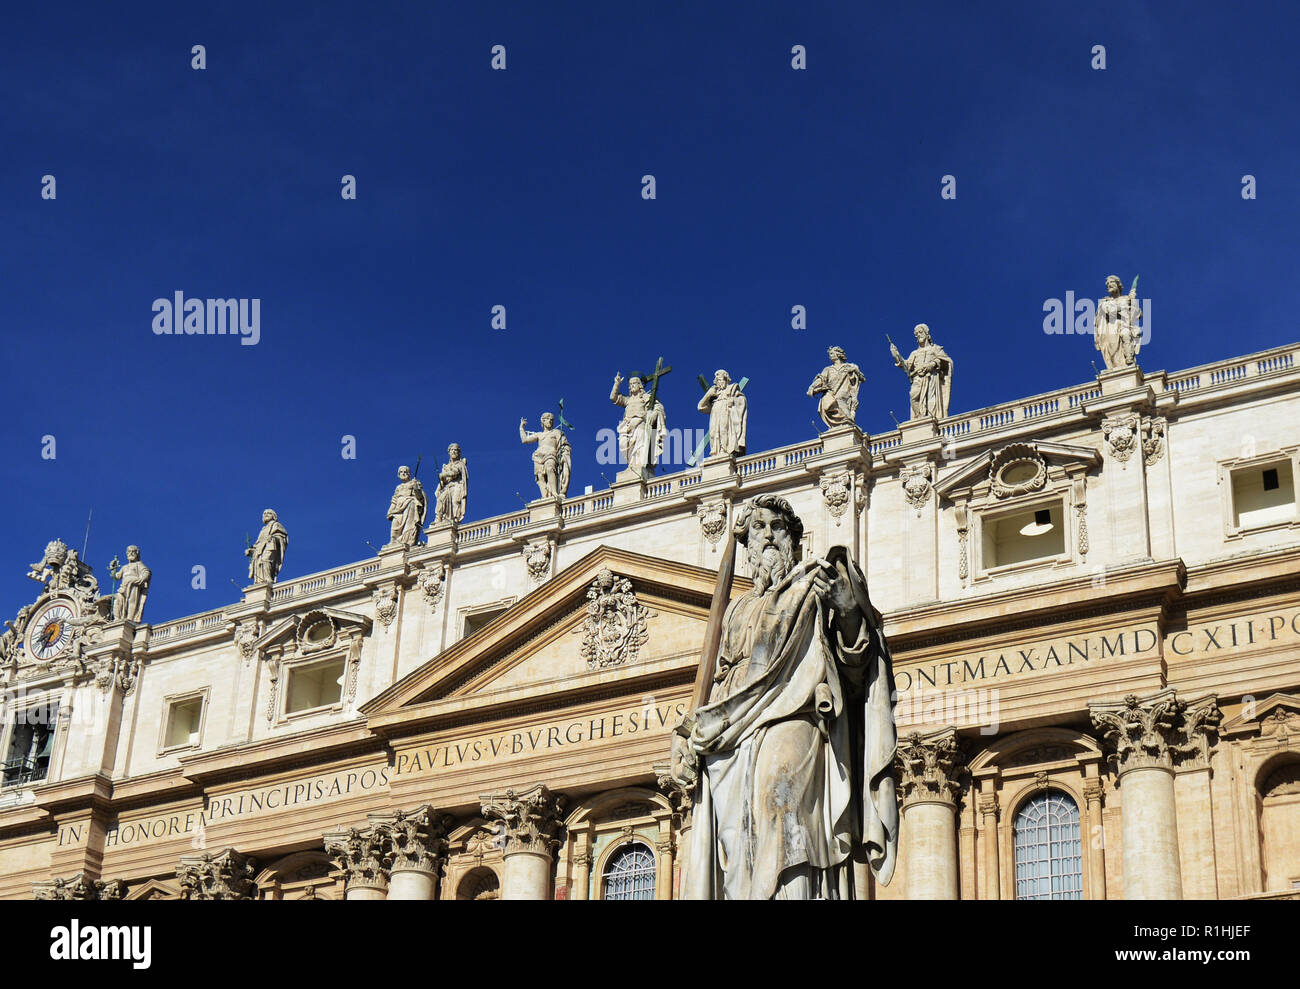 Statue of St. Paul with sword at the Vatican in front of St. Peter's Basilica in Rome, Italy Stock Photo